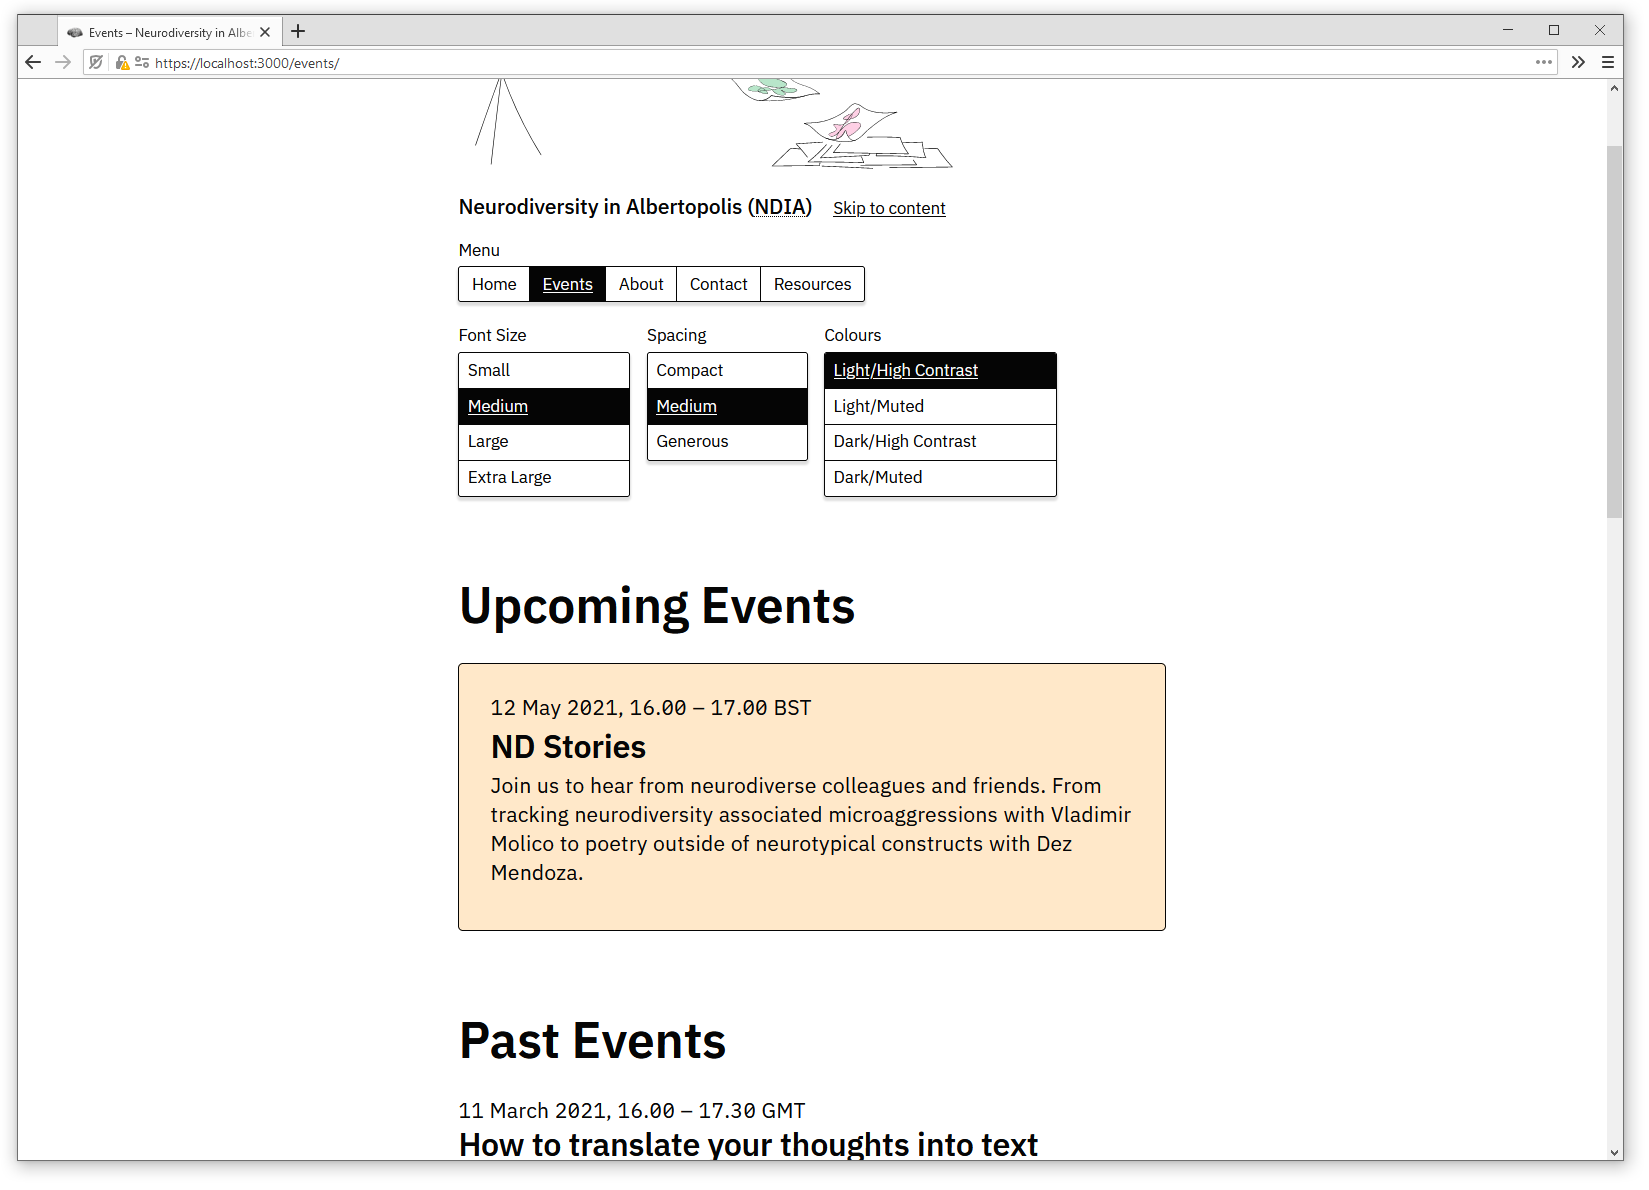 Screenshot of NDIA website. A header illustration, site menu, and a list of upcoming and past events is visible.